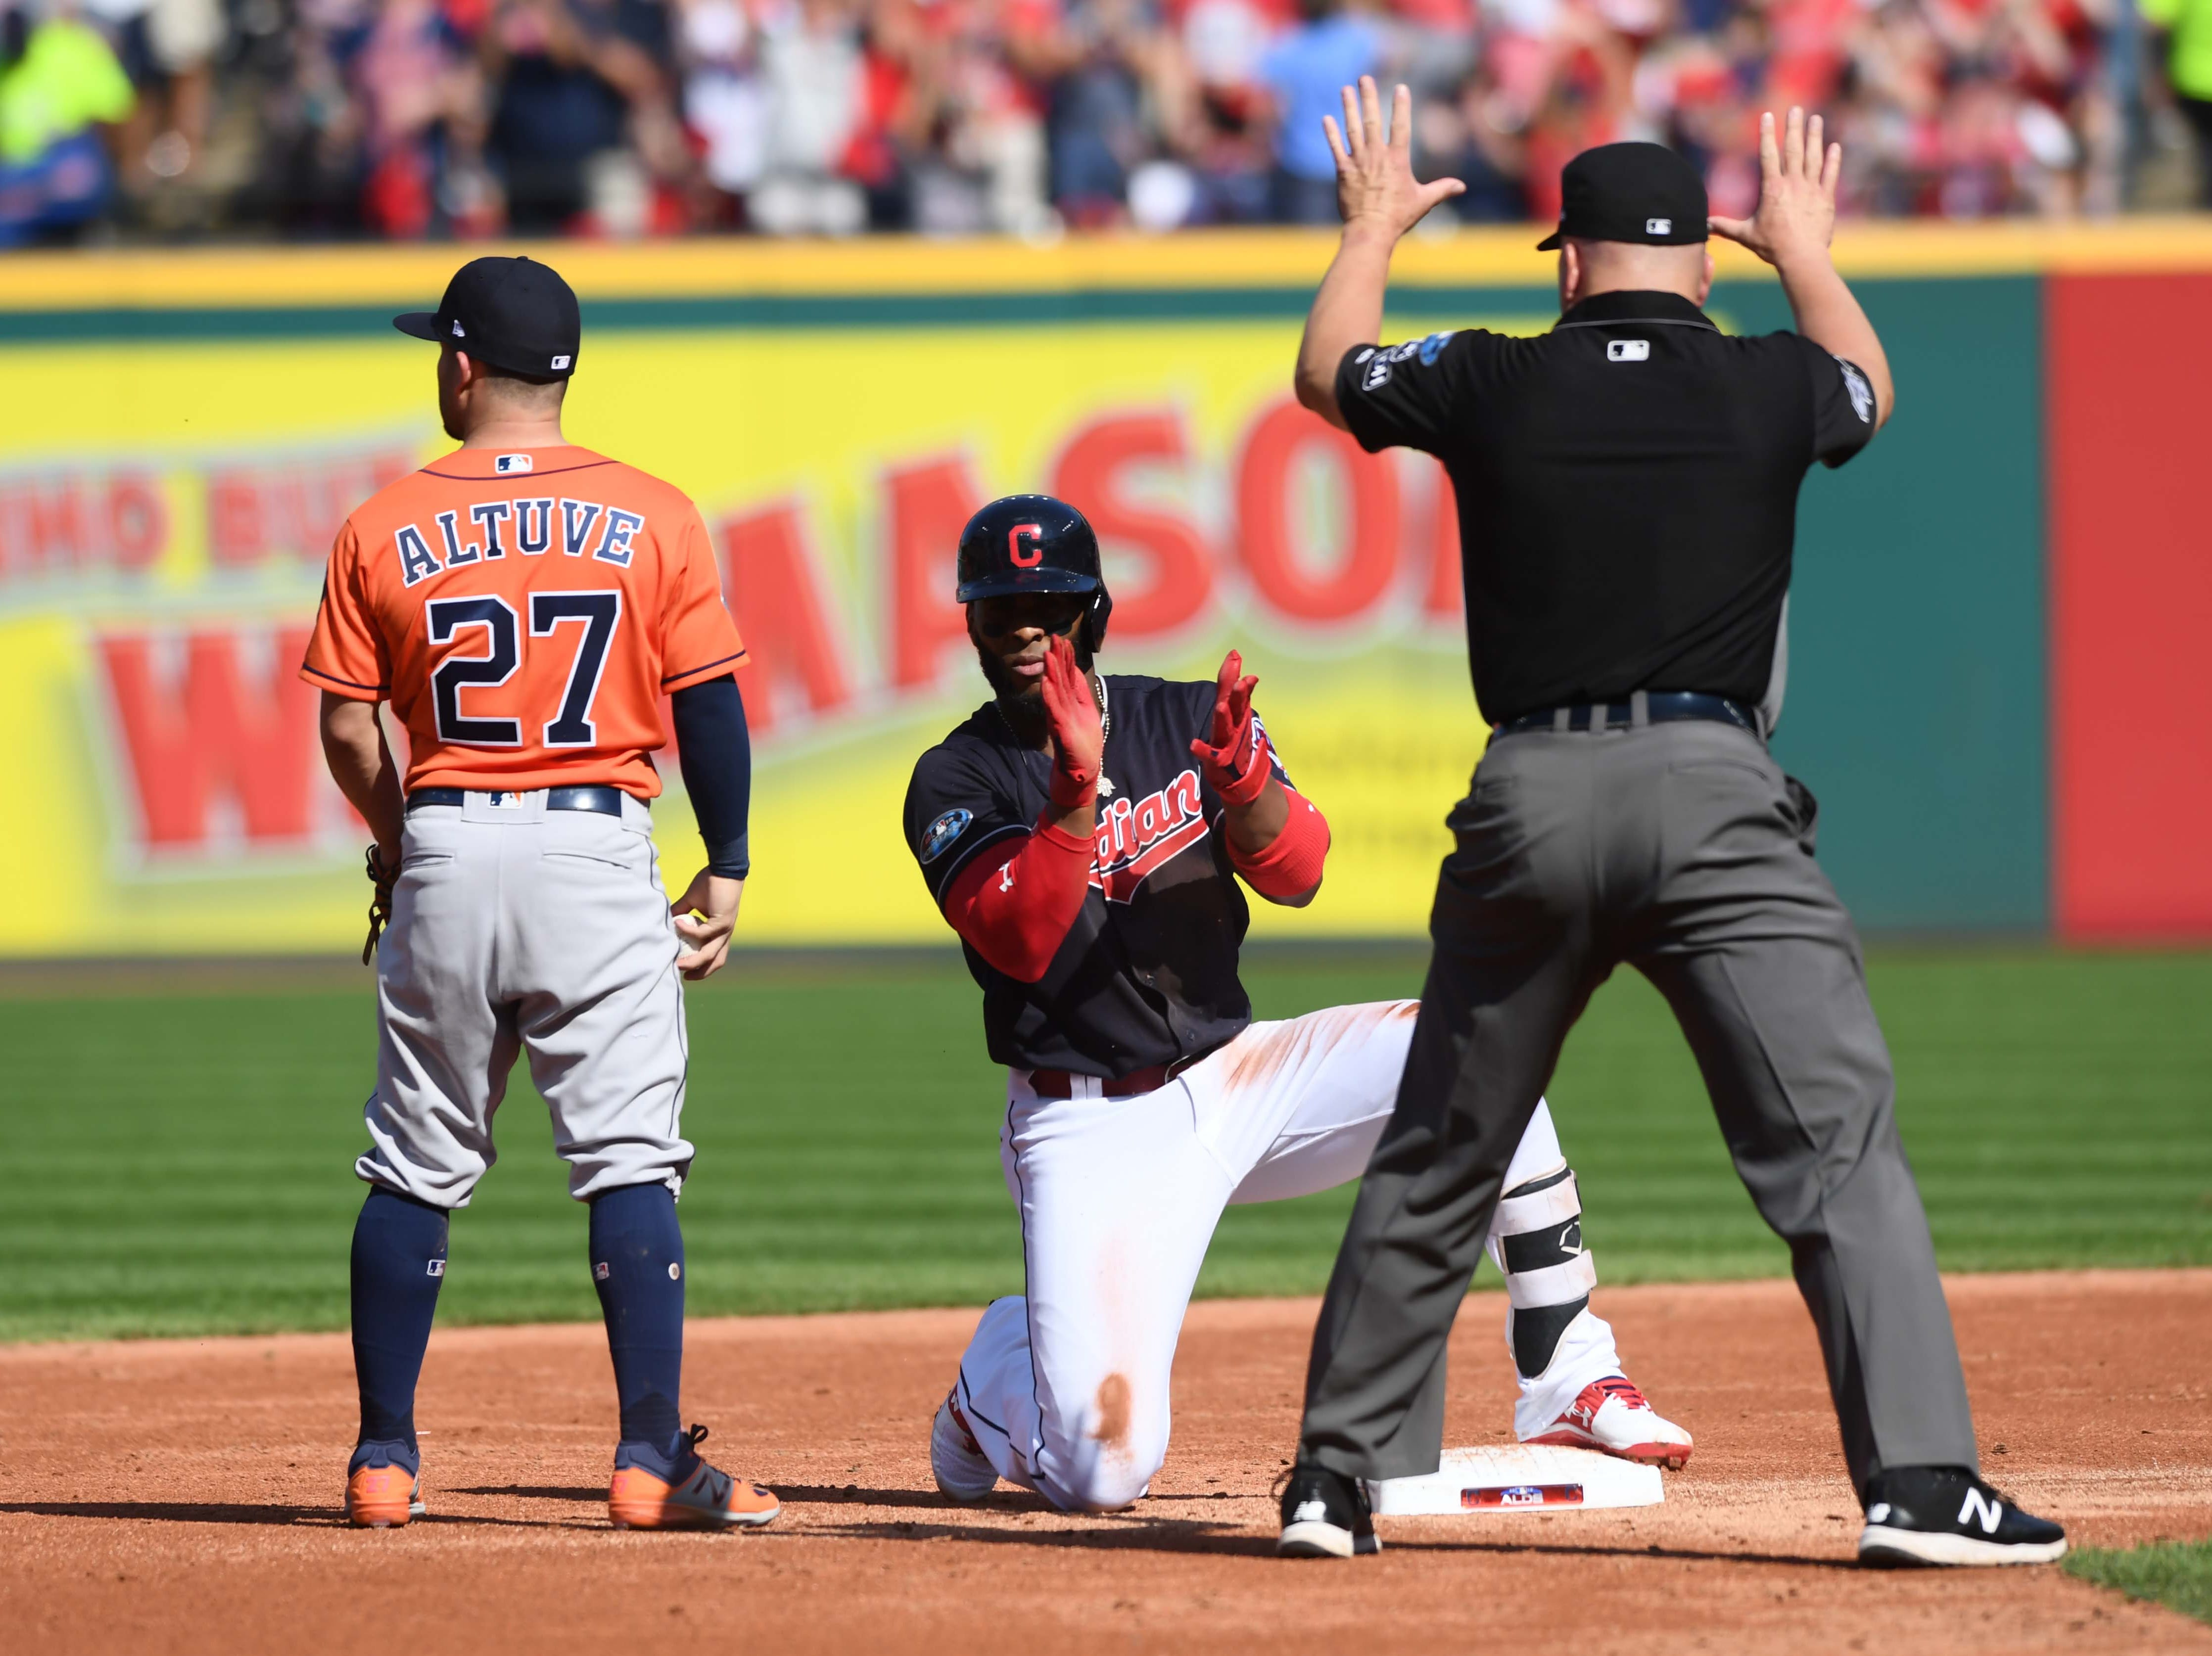 ALDS Game 3; Yandy Diaz reacts after doubling in the second inning.